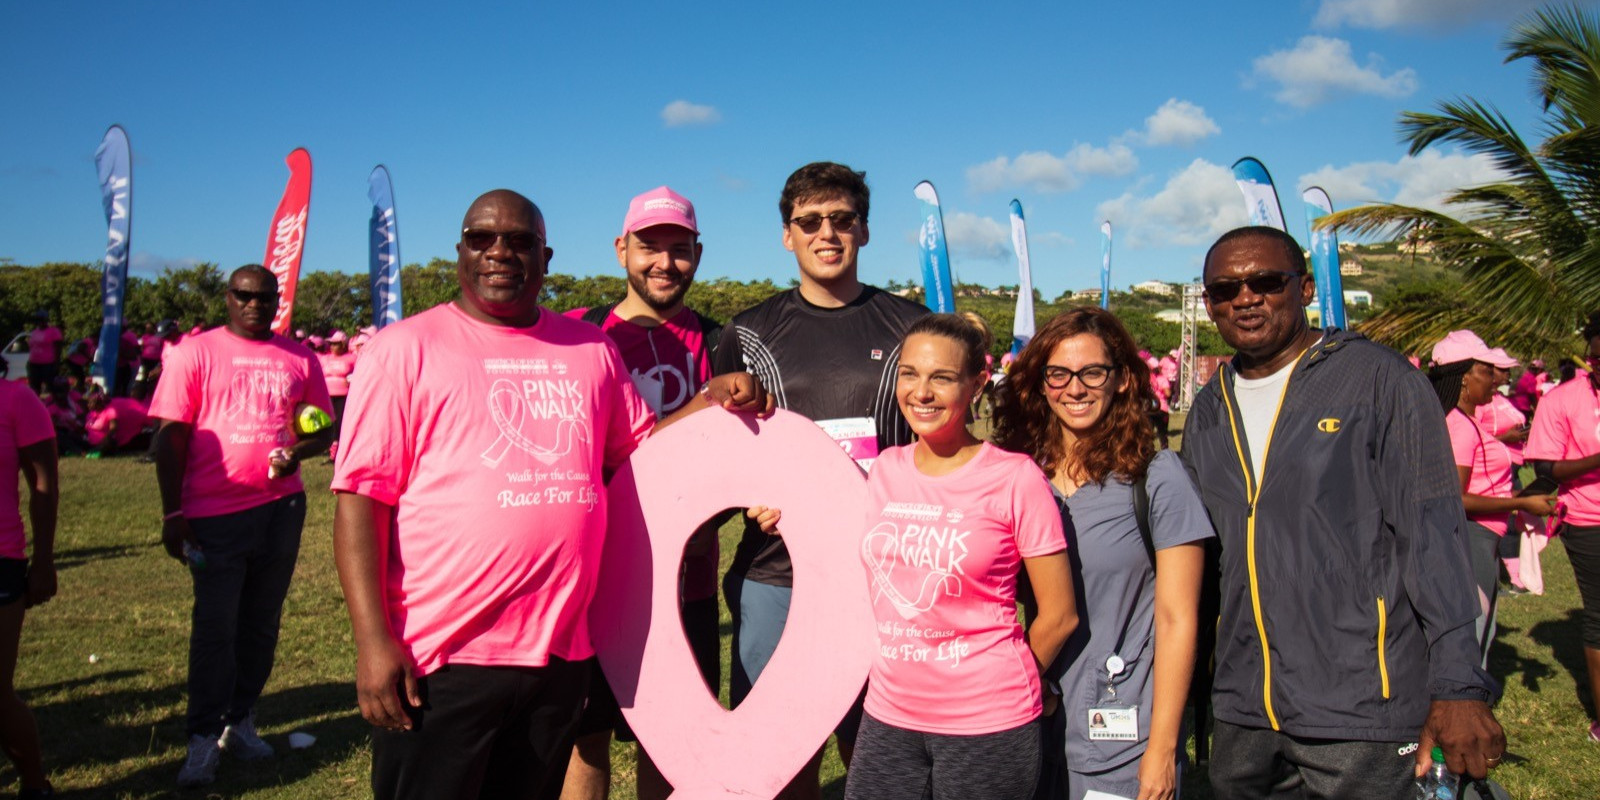 AMSA members with Prime Minister duirng Pink Walk